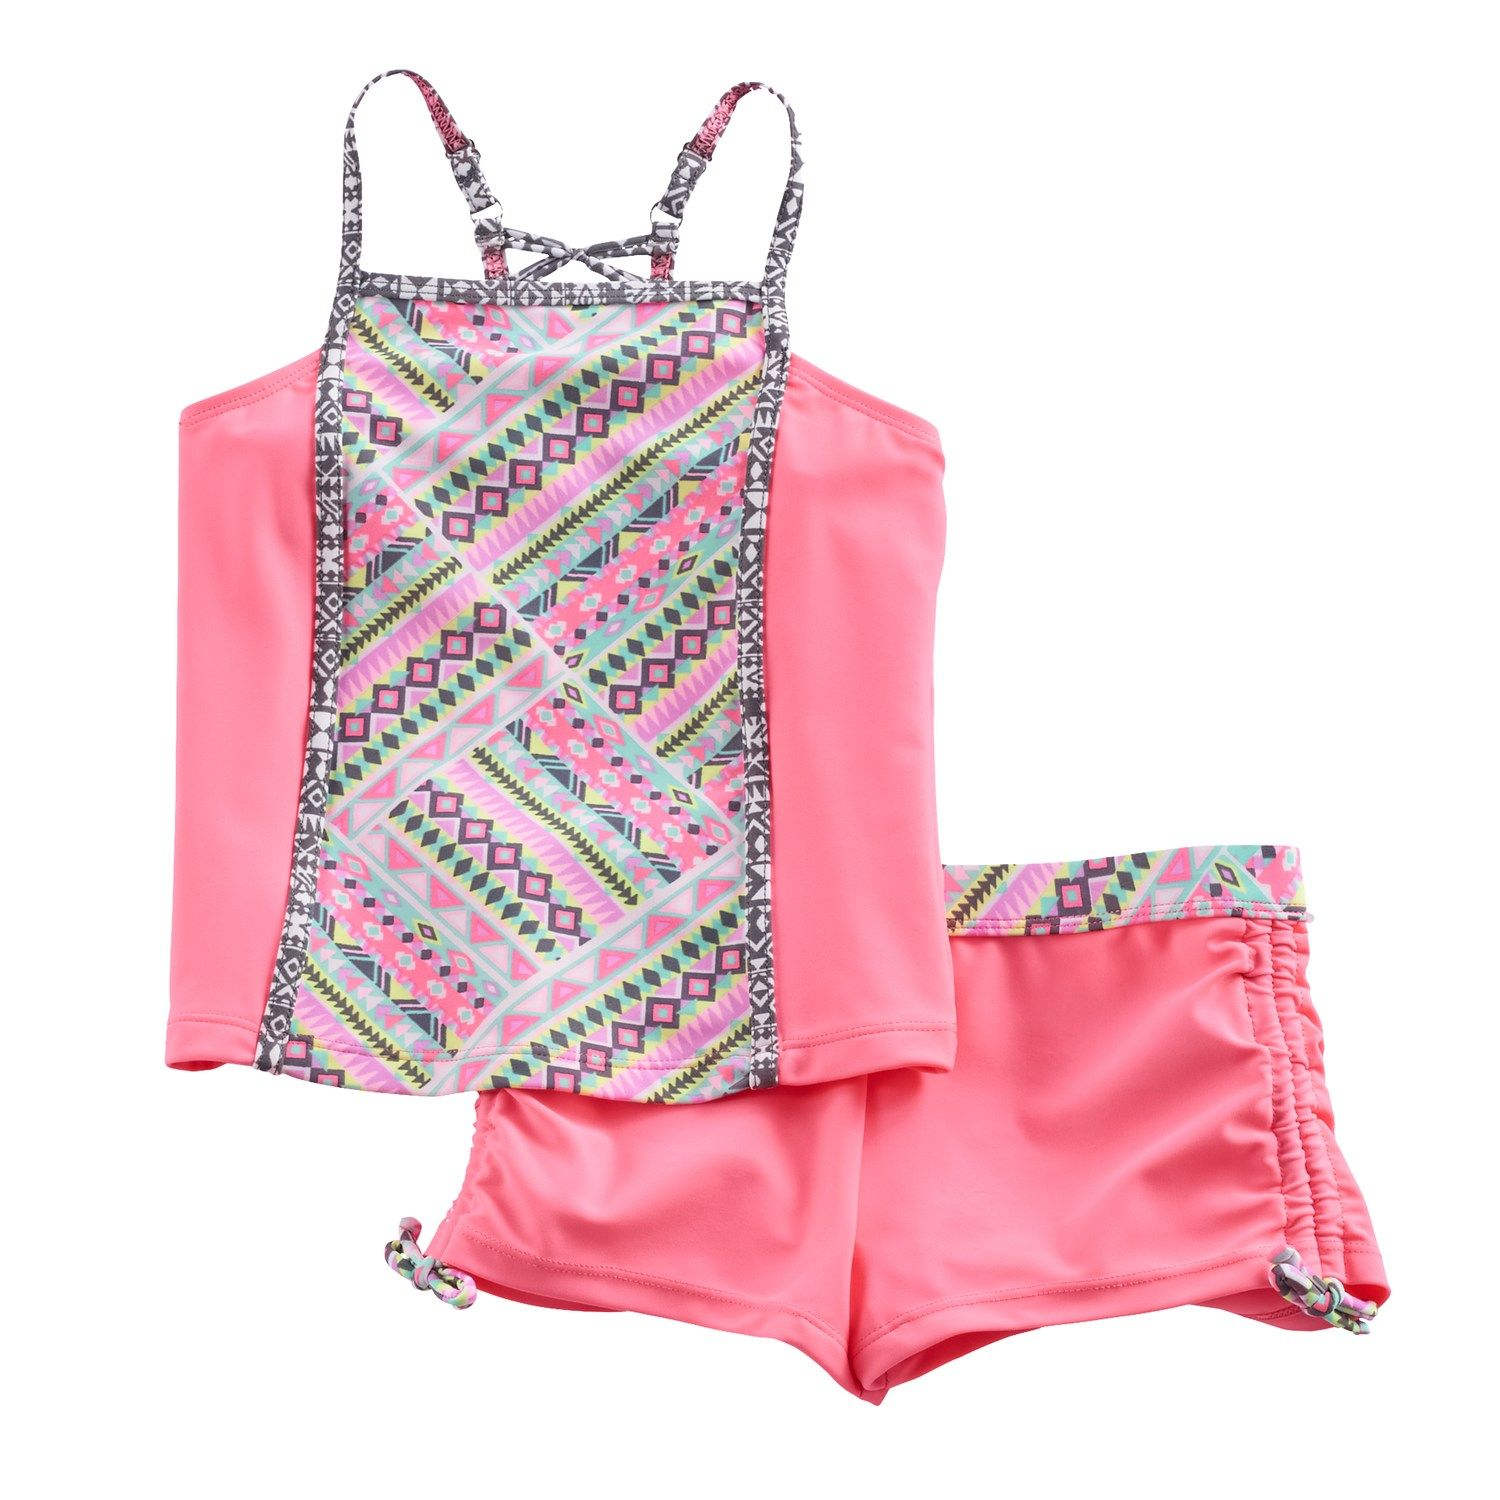 d7685df8b2 Girls 7-16 Free Country Tankini Top   Cinched Shorts Swimsuit Set ...